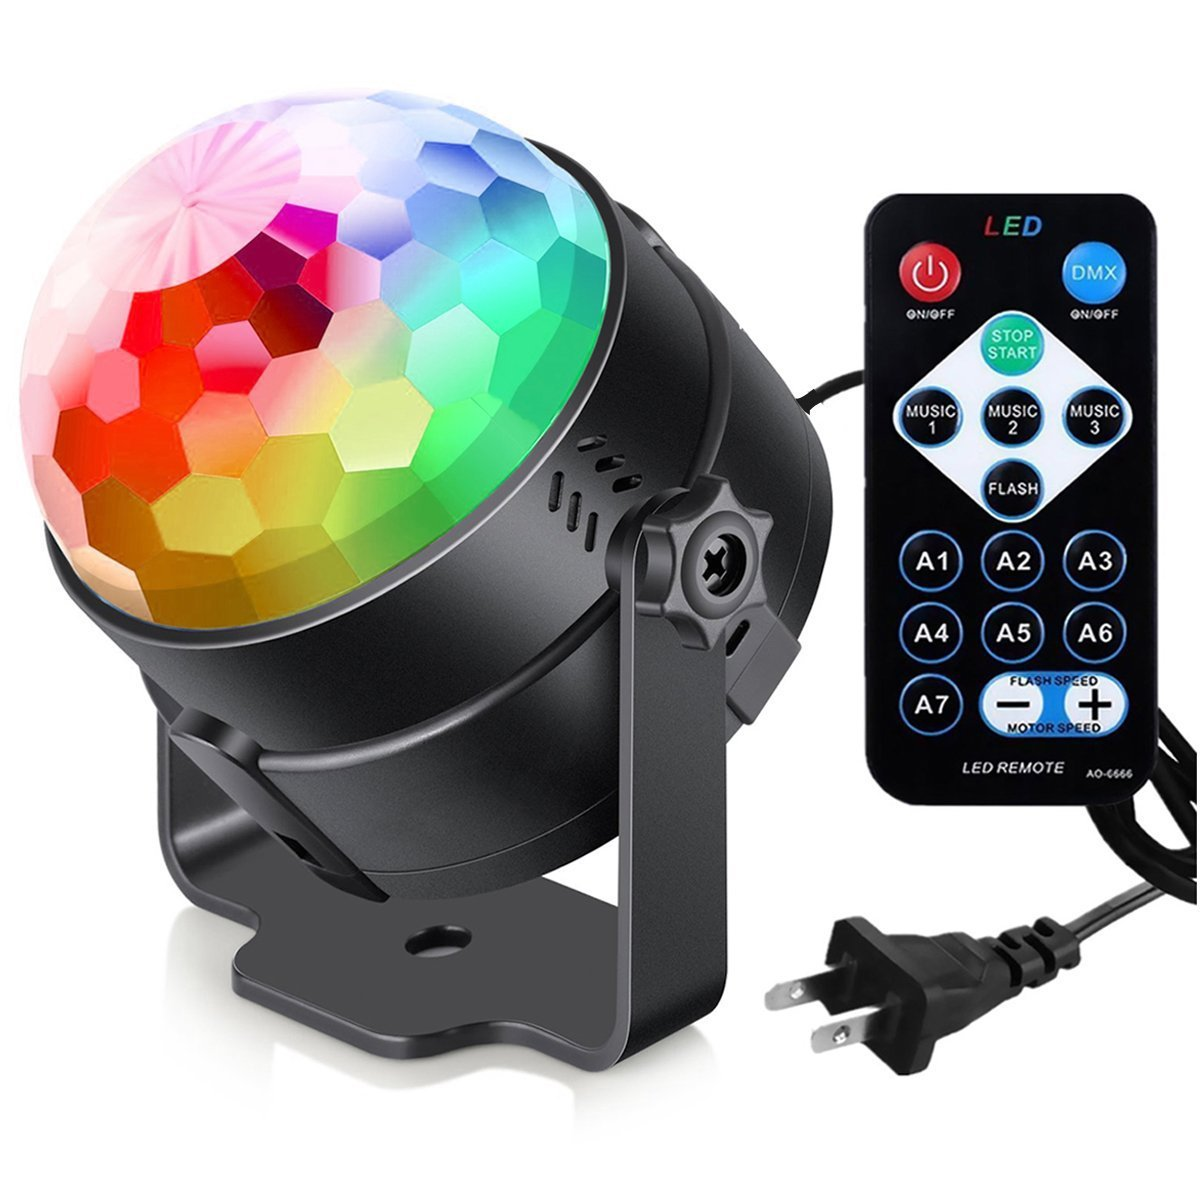 Disco Light Disco Ball LED RGB Party Lights Sound Activated Multiple Modes Supplies Strobe Light Dance Light for Kid, Parties, Bedroom, Birthday (with Remote)